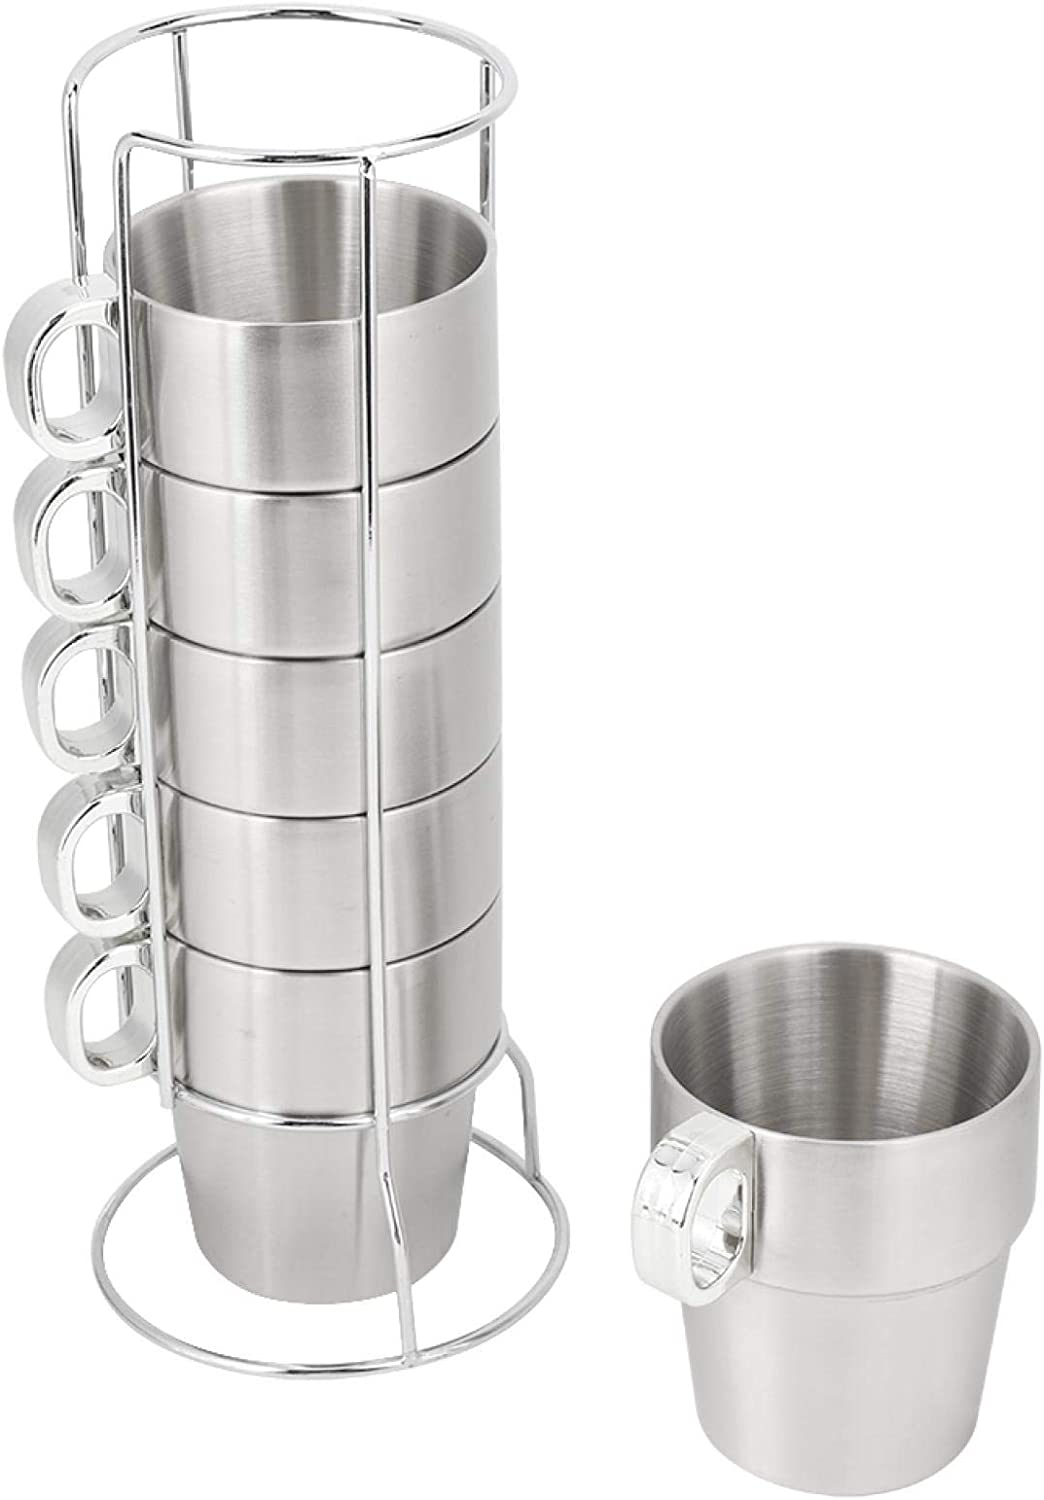 70% OFF Outlet Coffee Cup Reusable Stackable Drink Mug W Stand with Holder unisex